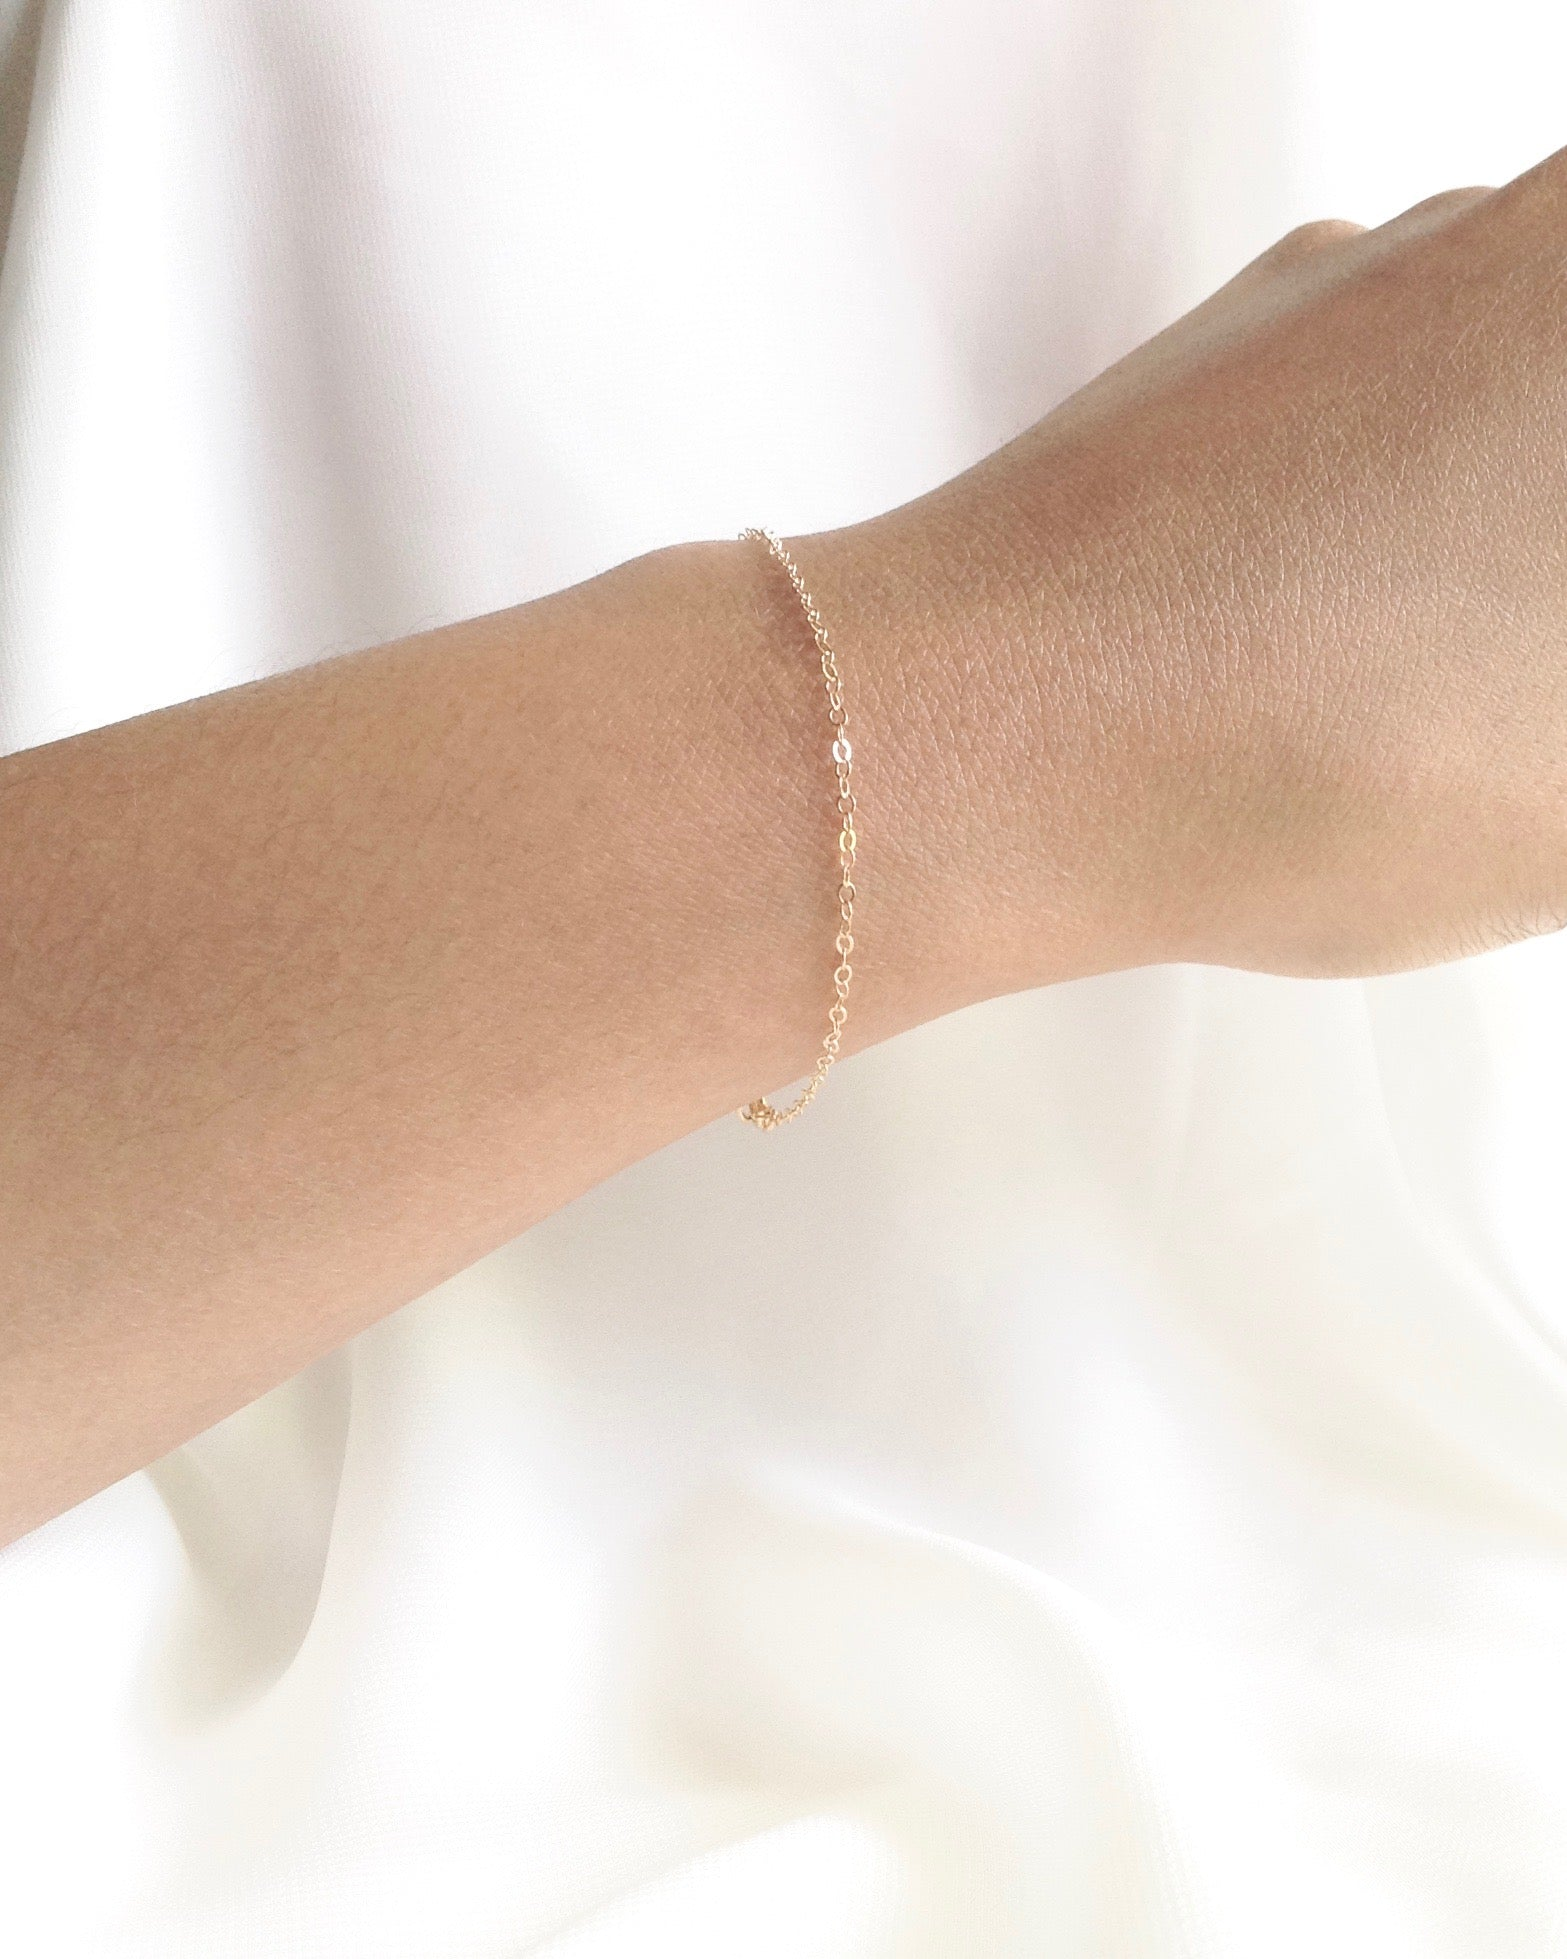 Minimal Thin Chain Bracelet in Gold Filled or Sterling Silver | IB Jewelry